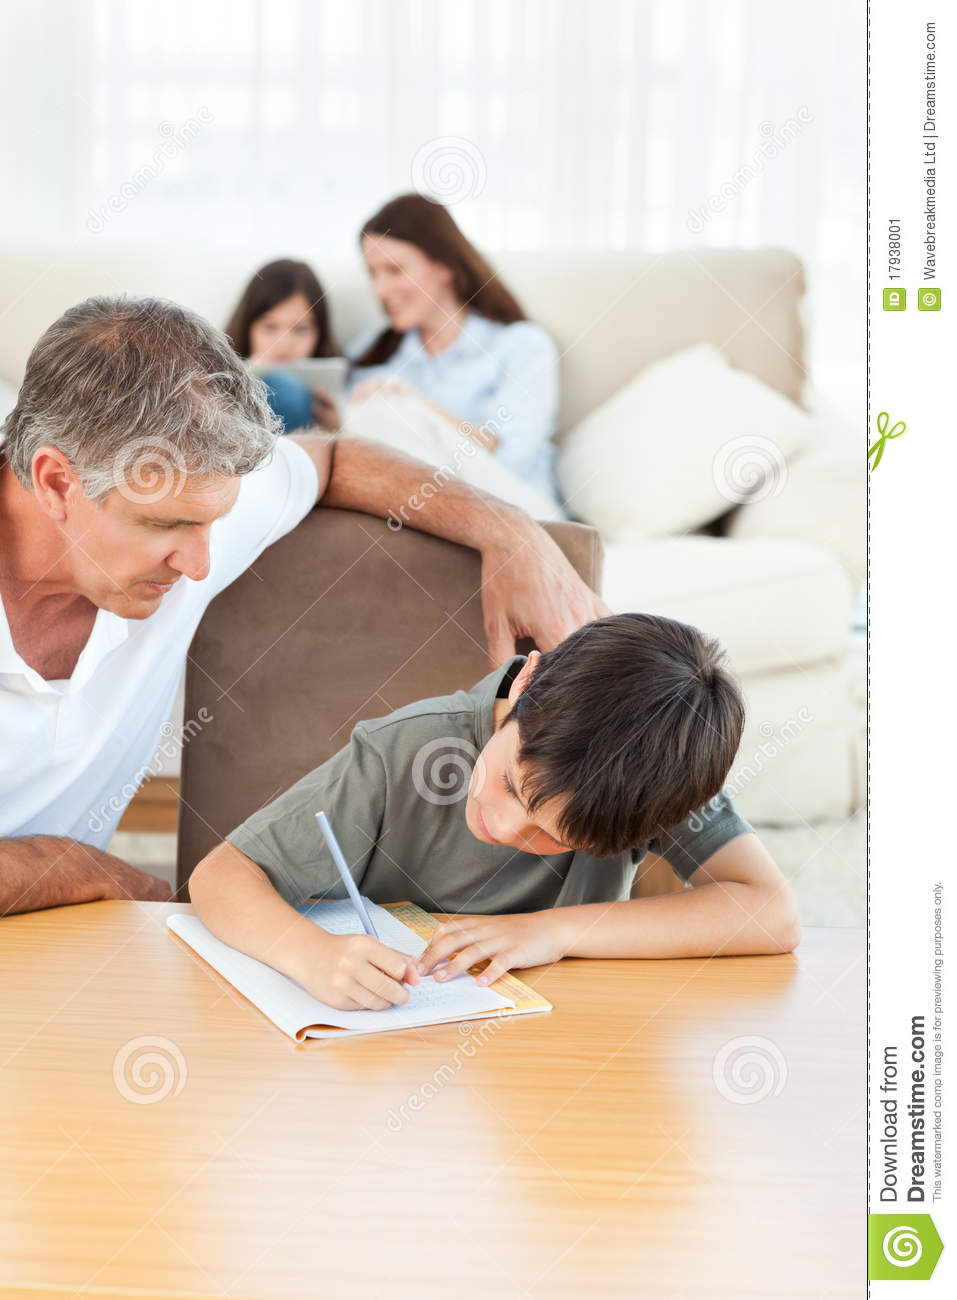 Help! How Can I Get My Kid to Do His Homework?